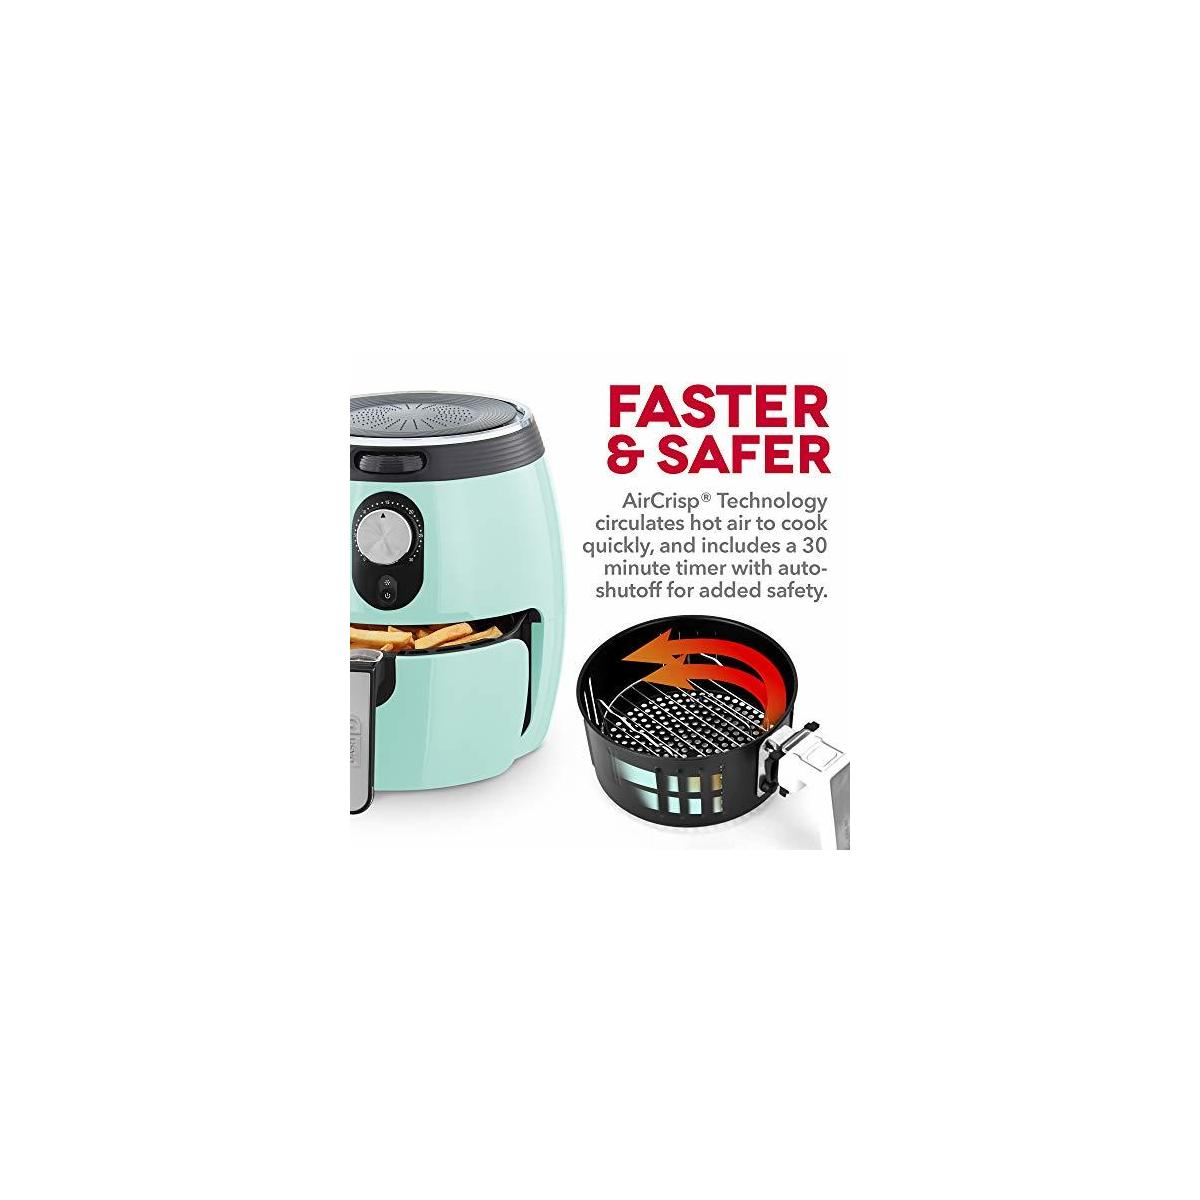 DASH DMAF355GBAQ02 Deluxe Electric Air Fryer + Oven Cooker with Temperature Control, Non Stick Fry Basket, Recipe Guide + Auto Shut off Feature, 3qt (ALL VARIATIONS)